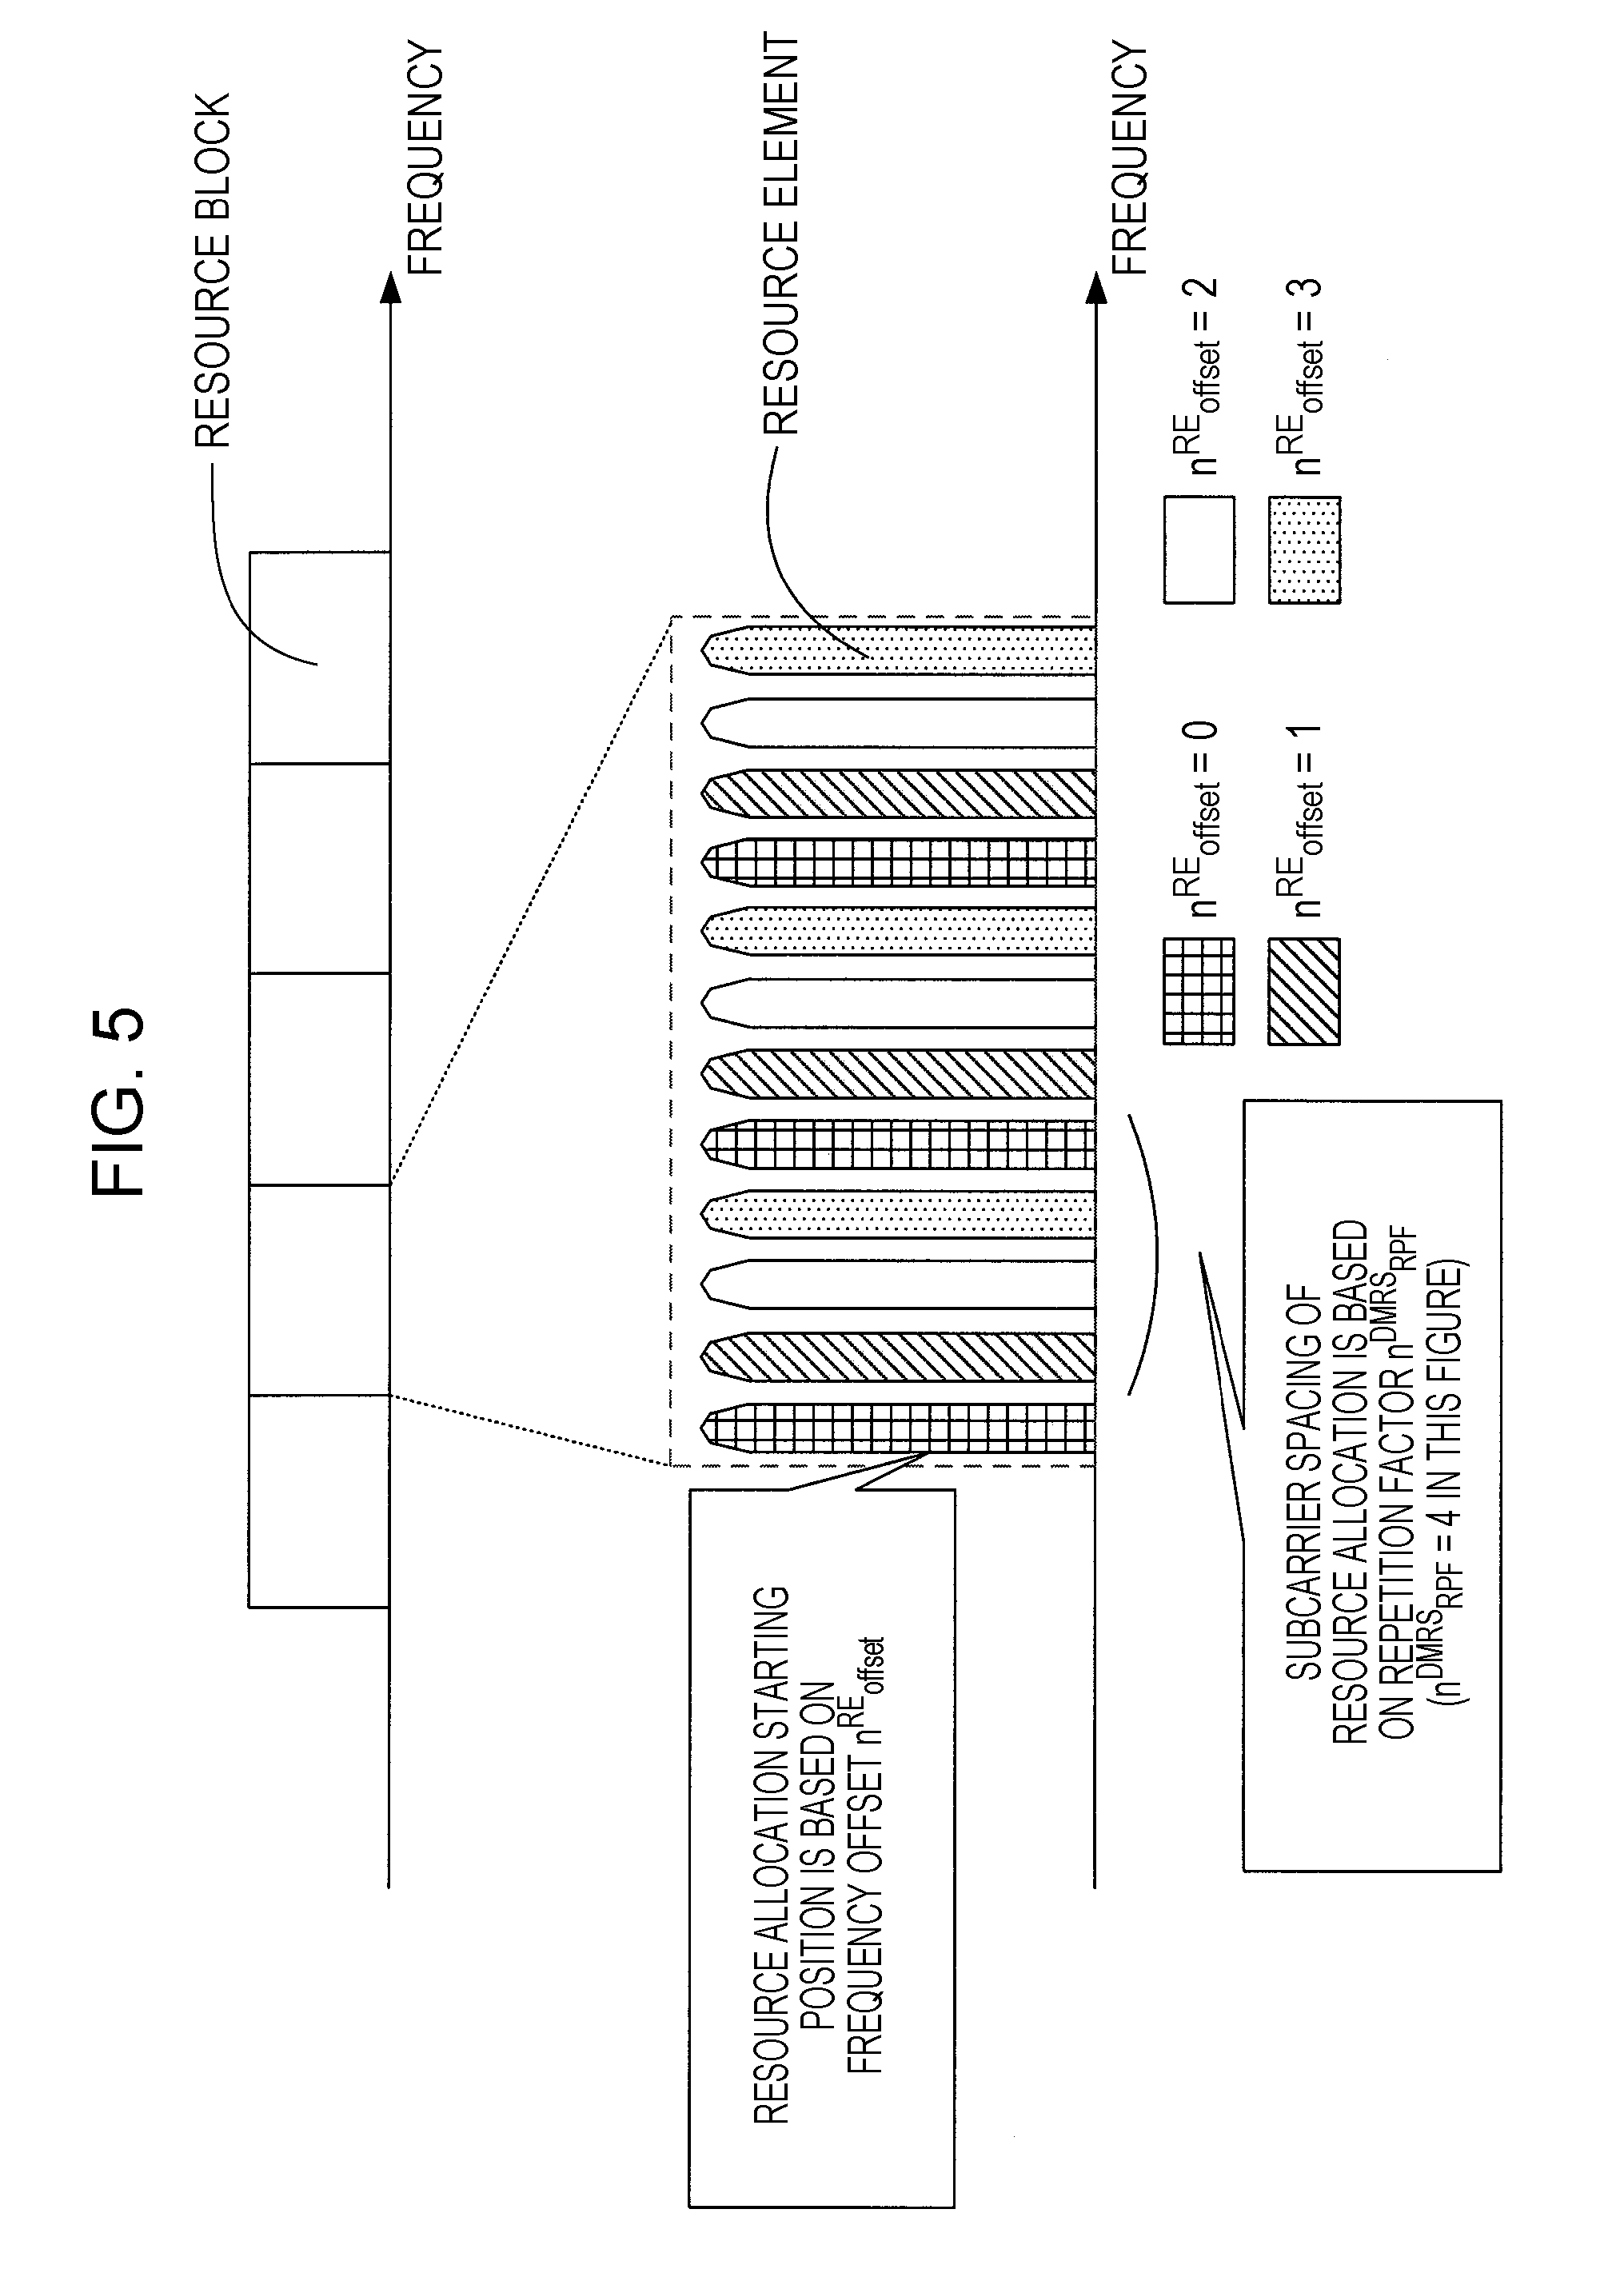 us20140198747 communication system base station patent drawing pooptronica